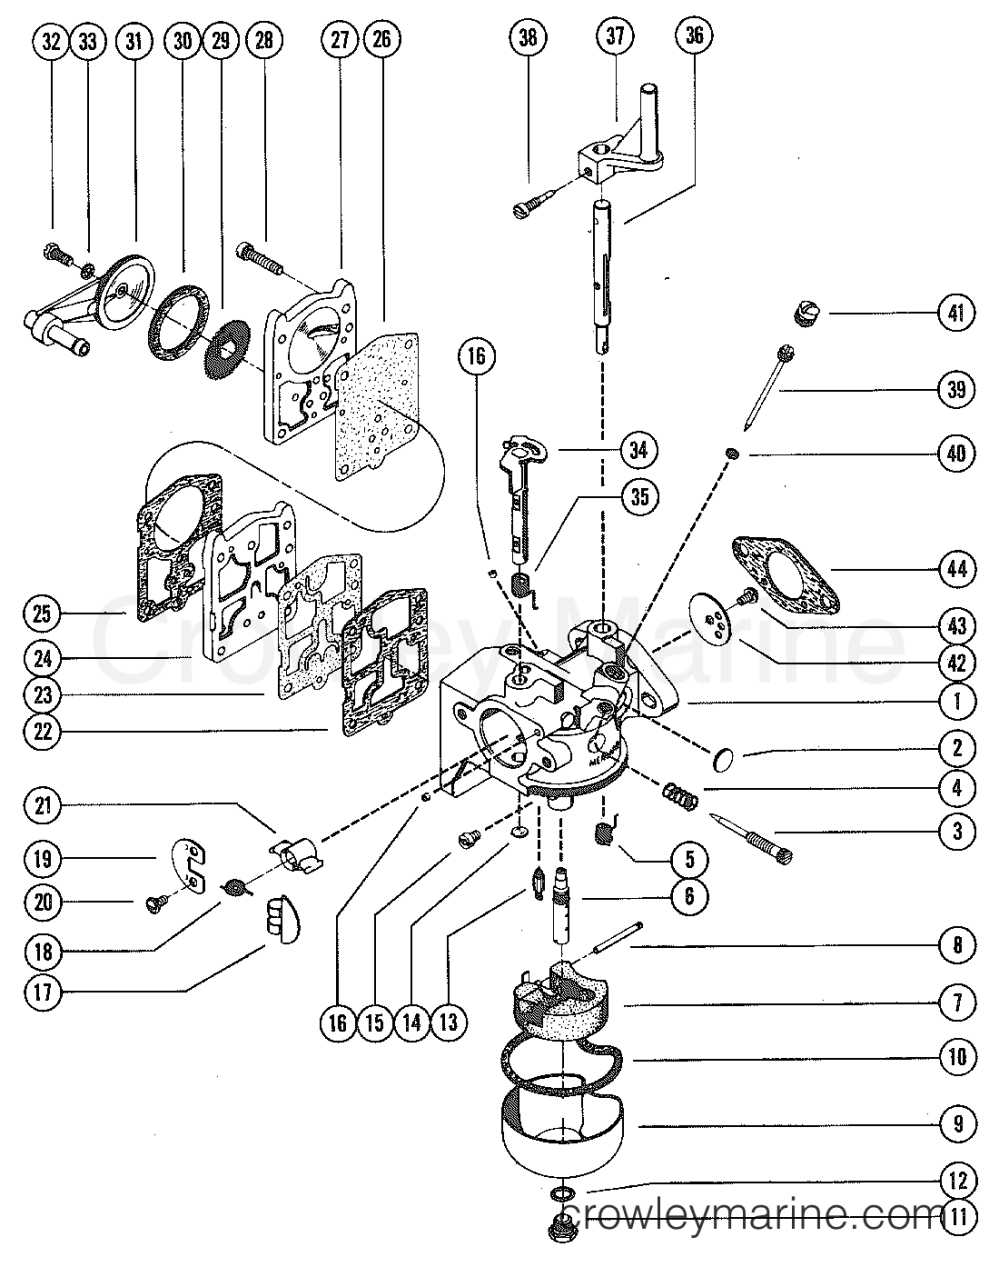 medium resolution of mercury carb diagram wiring diagram expert 9 9 mercury 2 stroke carb diagram